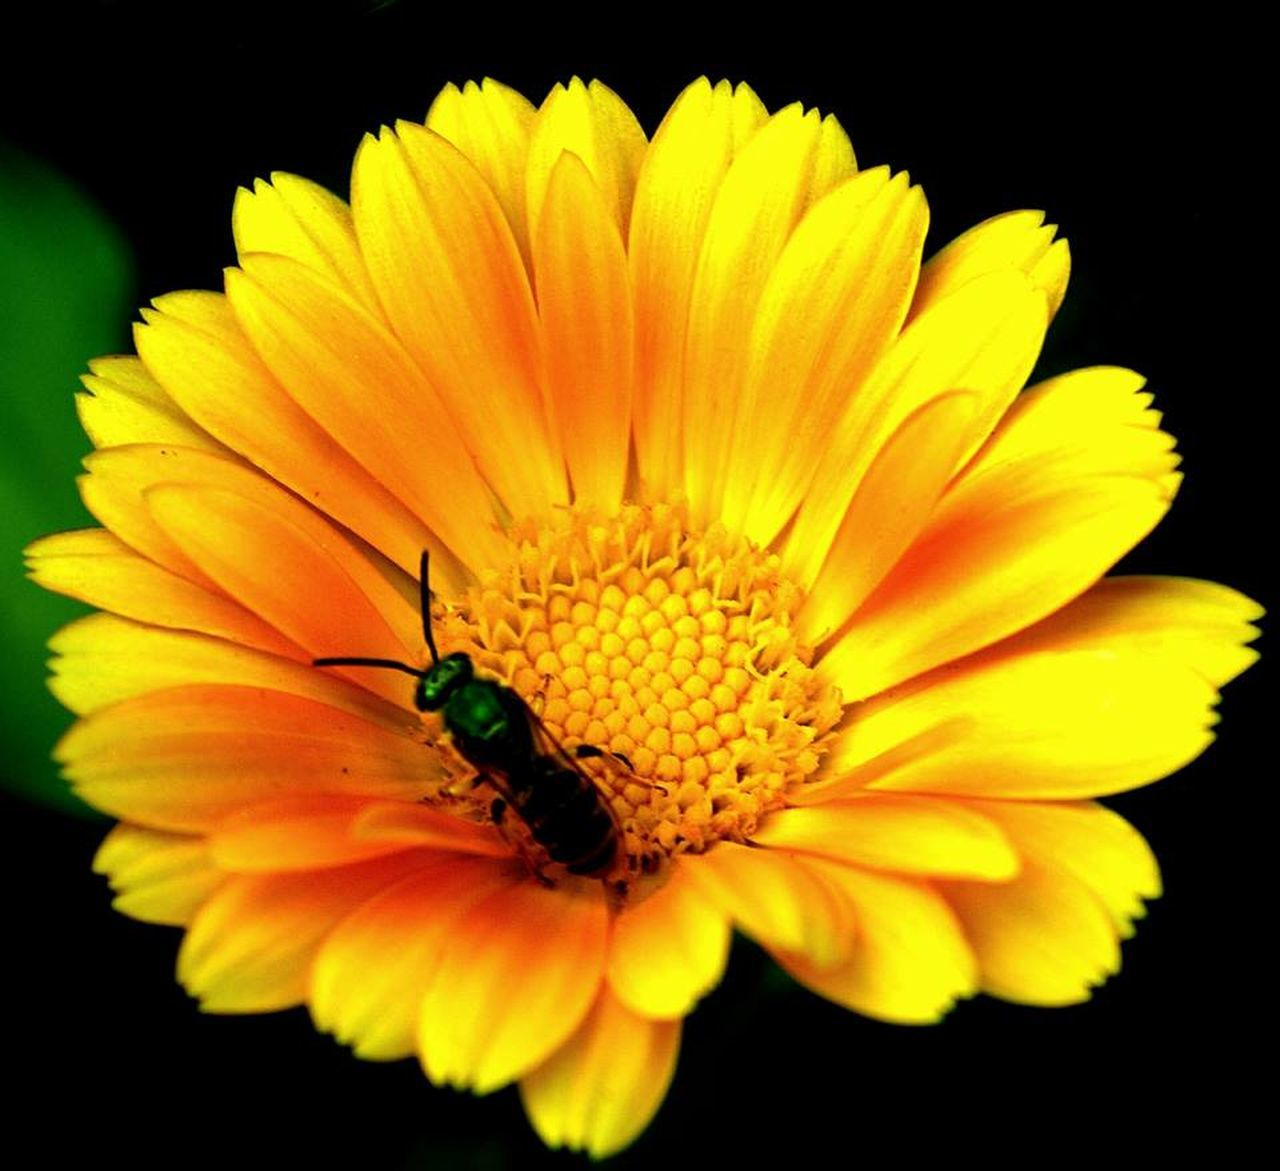 flower, petal, yellow, beauty in nature, flower head, fragility, nature, freshness, one animal, pollen, growth, animal themes, insect, no people, close-up, blooming, black background, plant, animals in the wild, outdoors, day